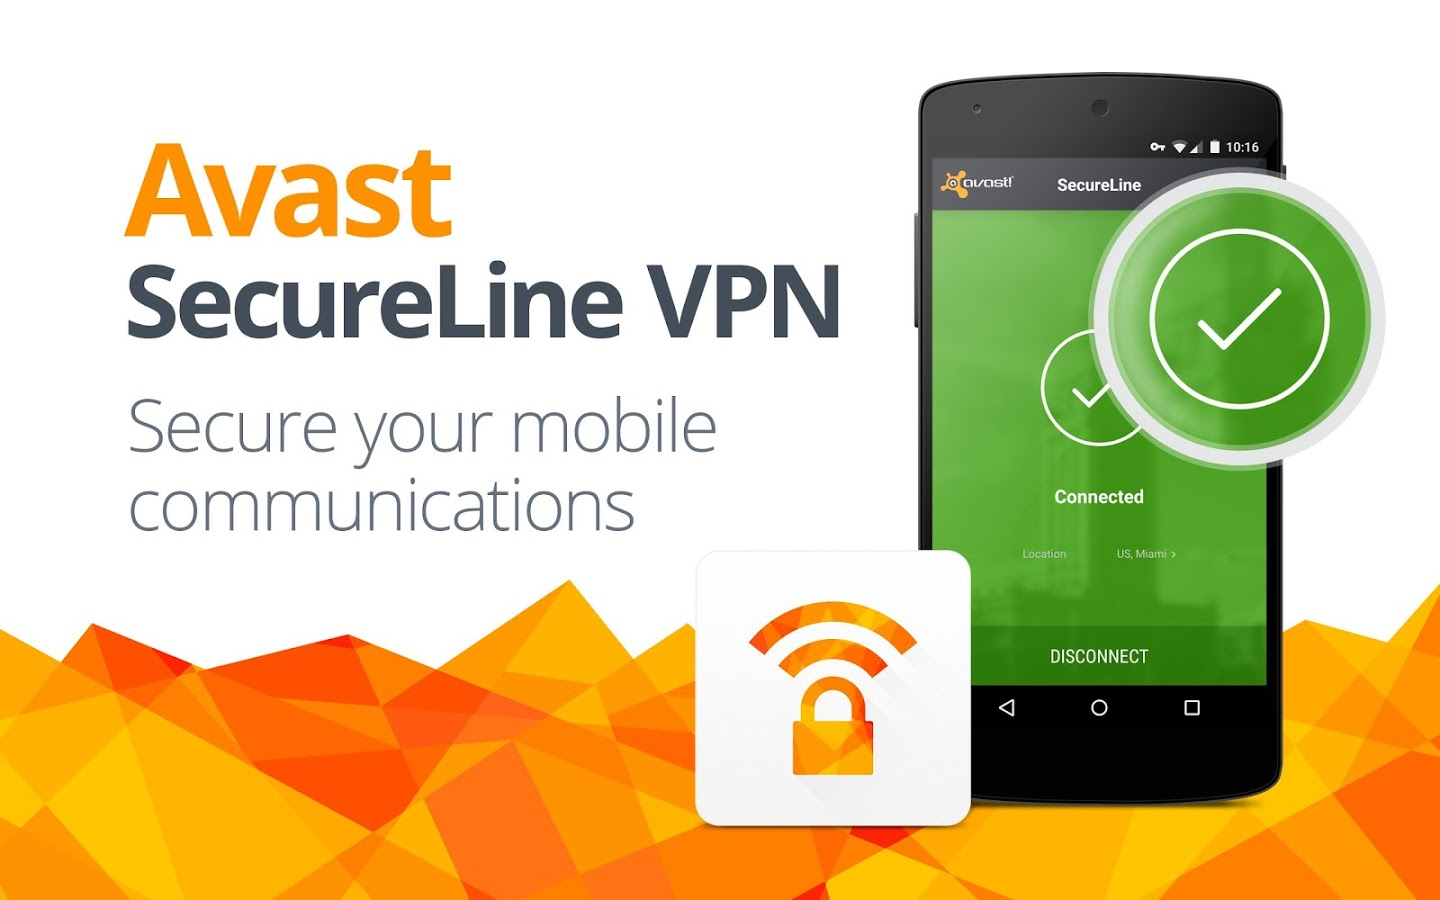 UCG Highly Recommends Avast Security VPN for Your iPhone or Android